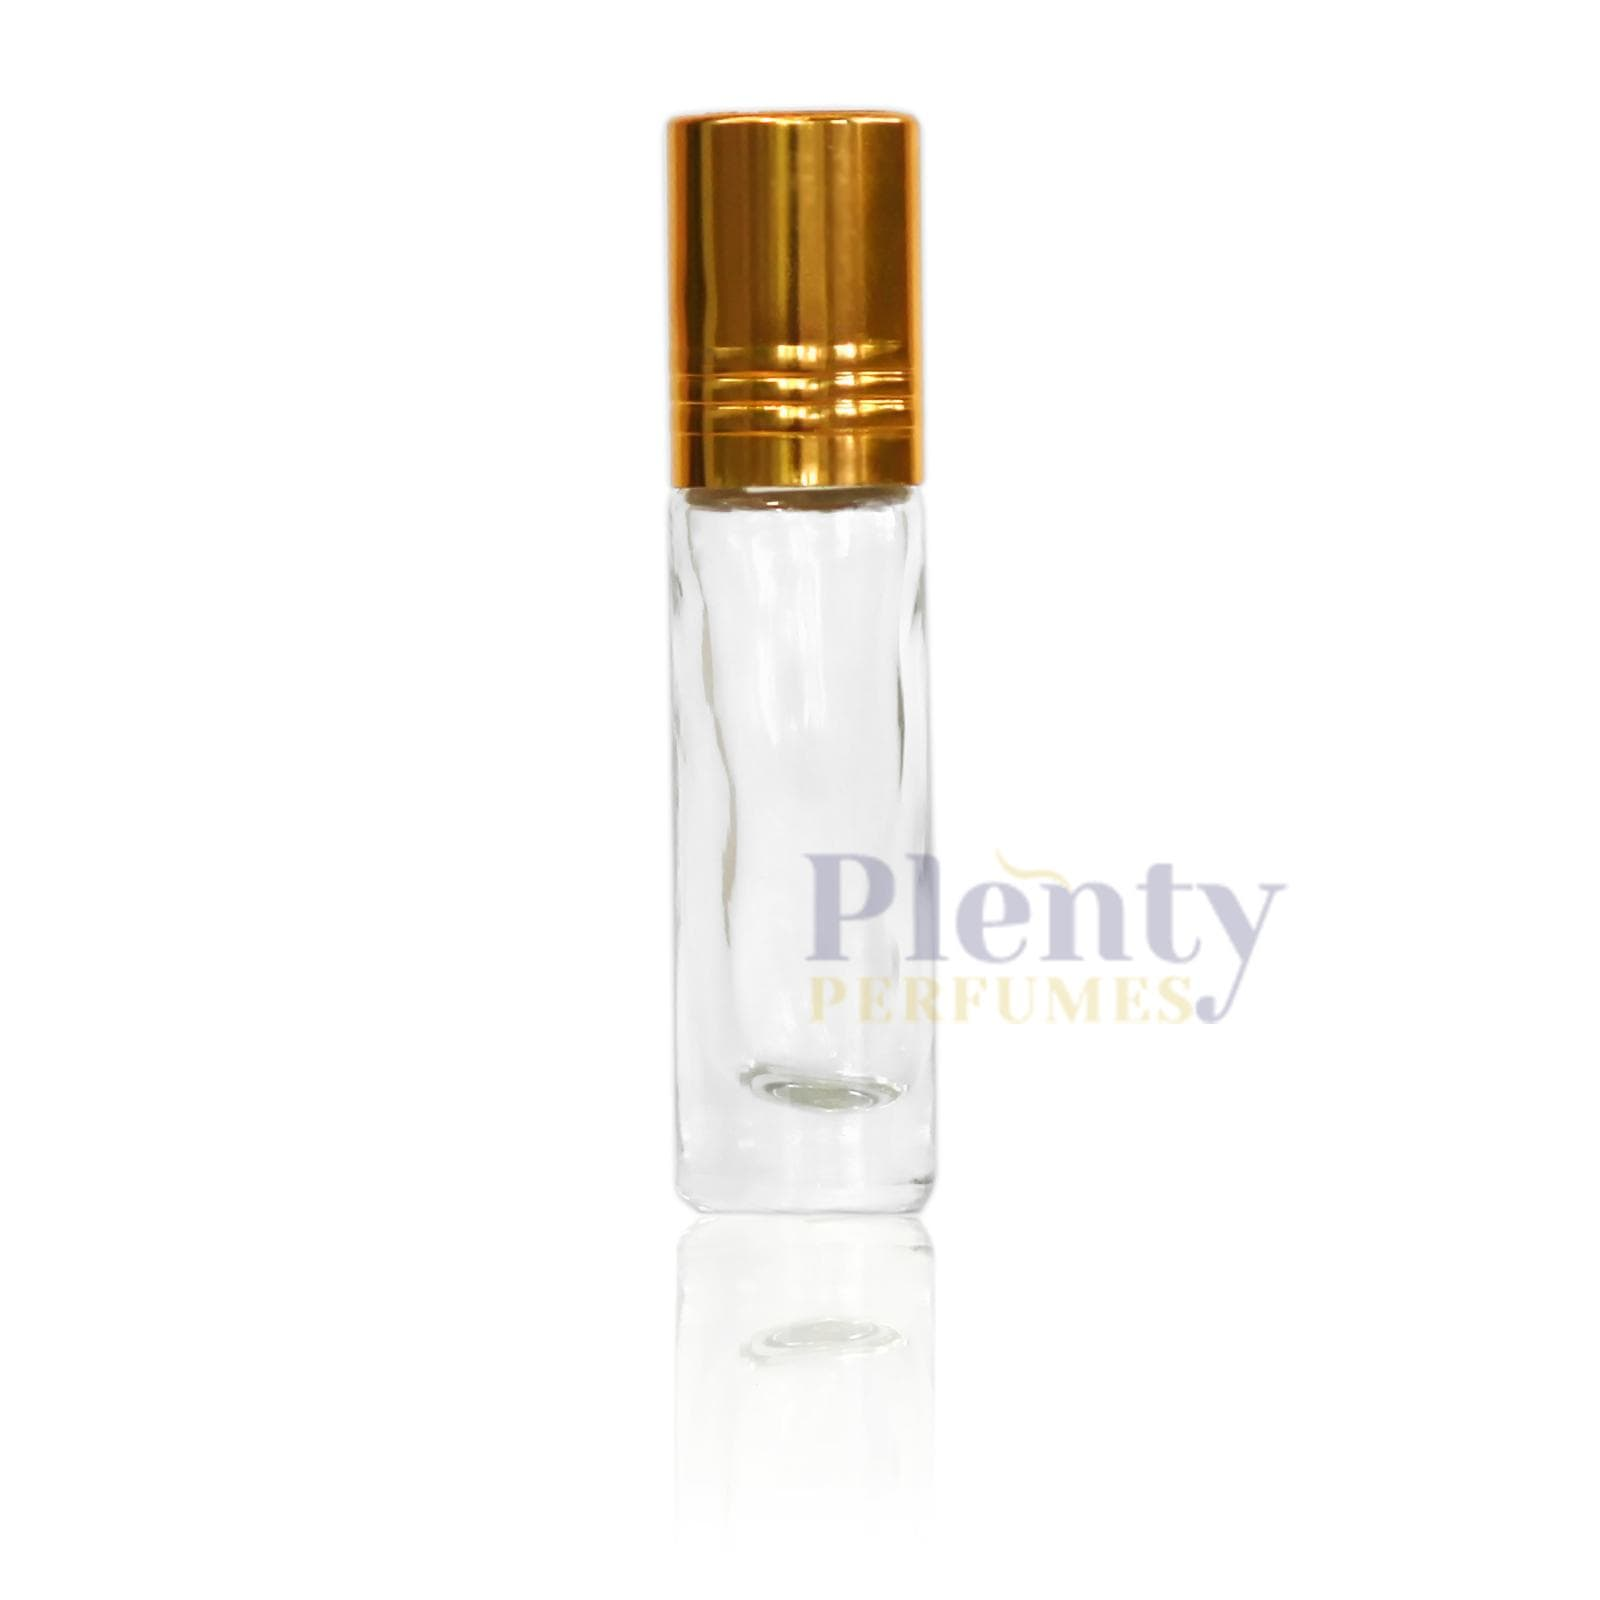 Attar Rose By Swiss Arabian Perfume Oil - Plenty Perfumes